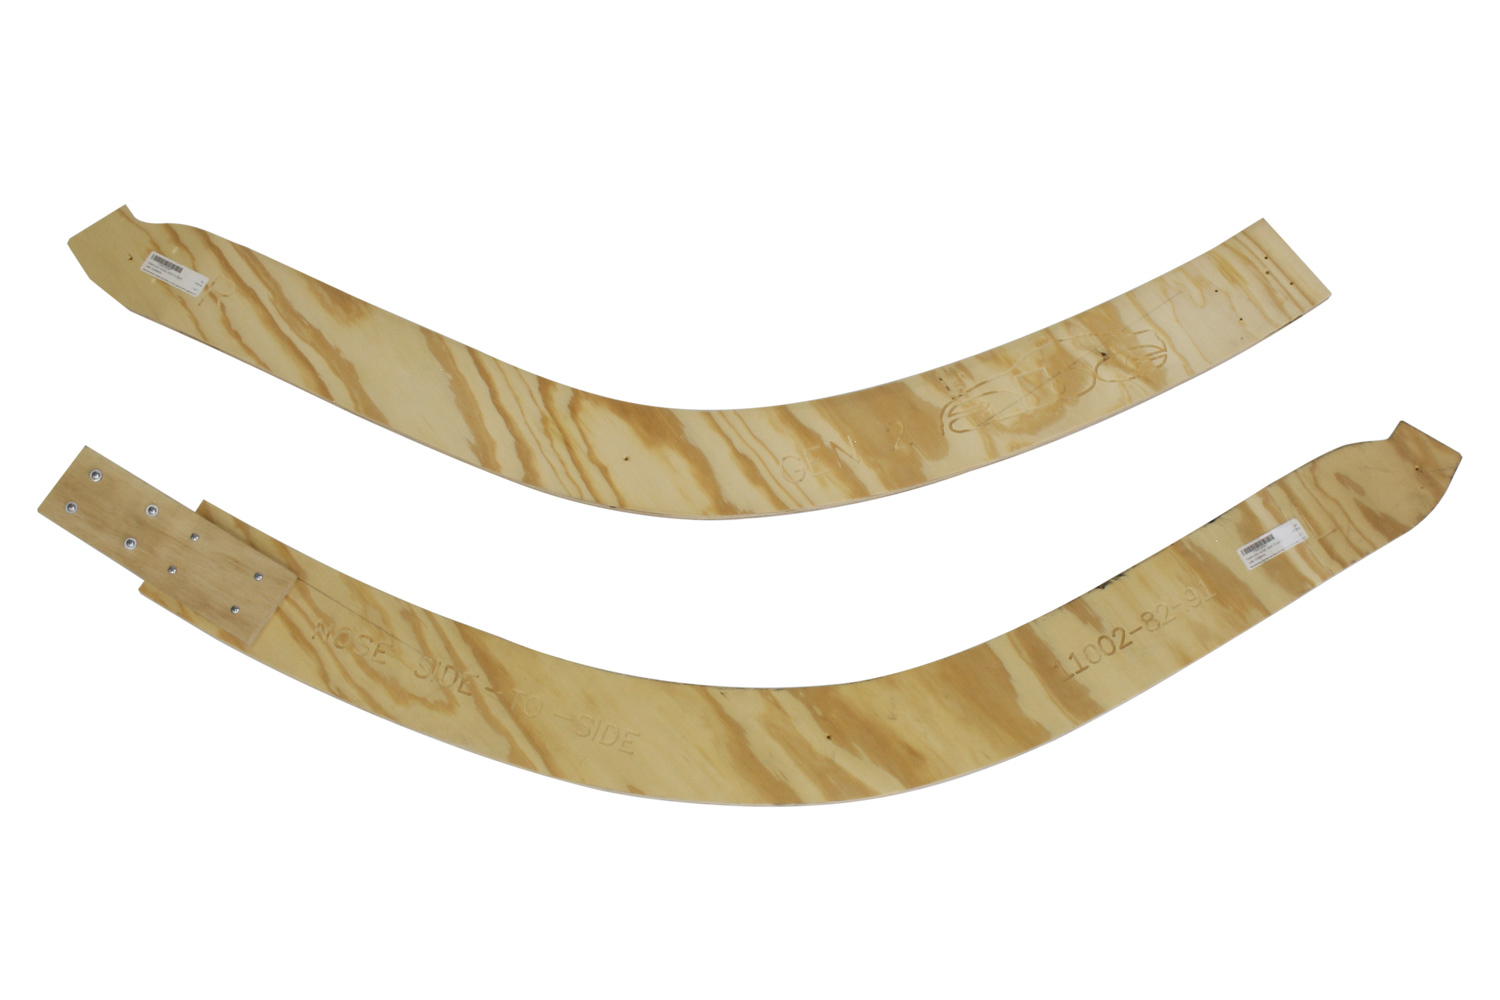 Fivestar 2019 LM Nose Template Side to Side Common Wood